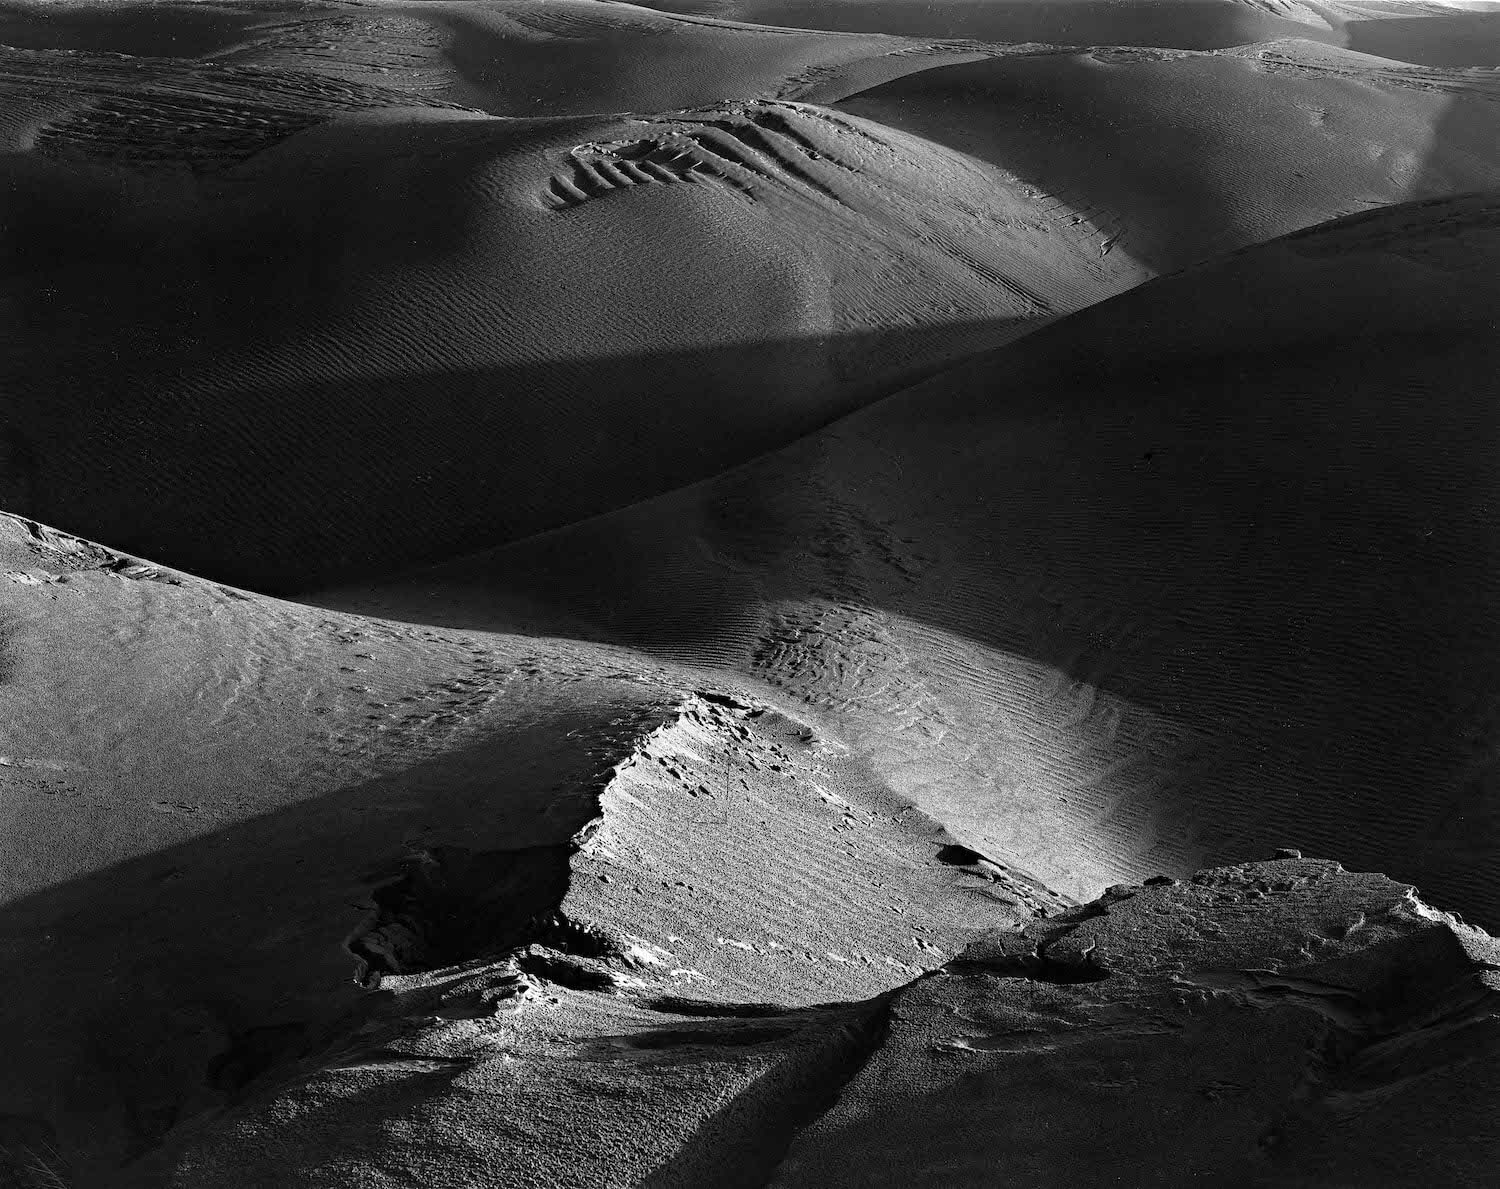 dunes are a great place to develop your photography